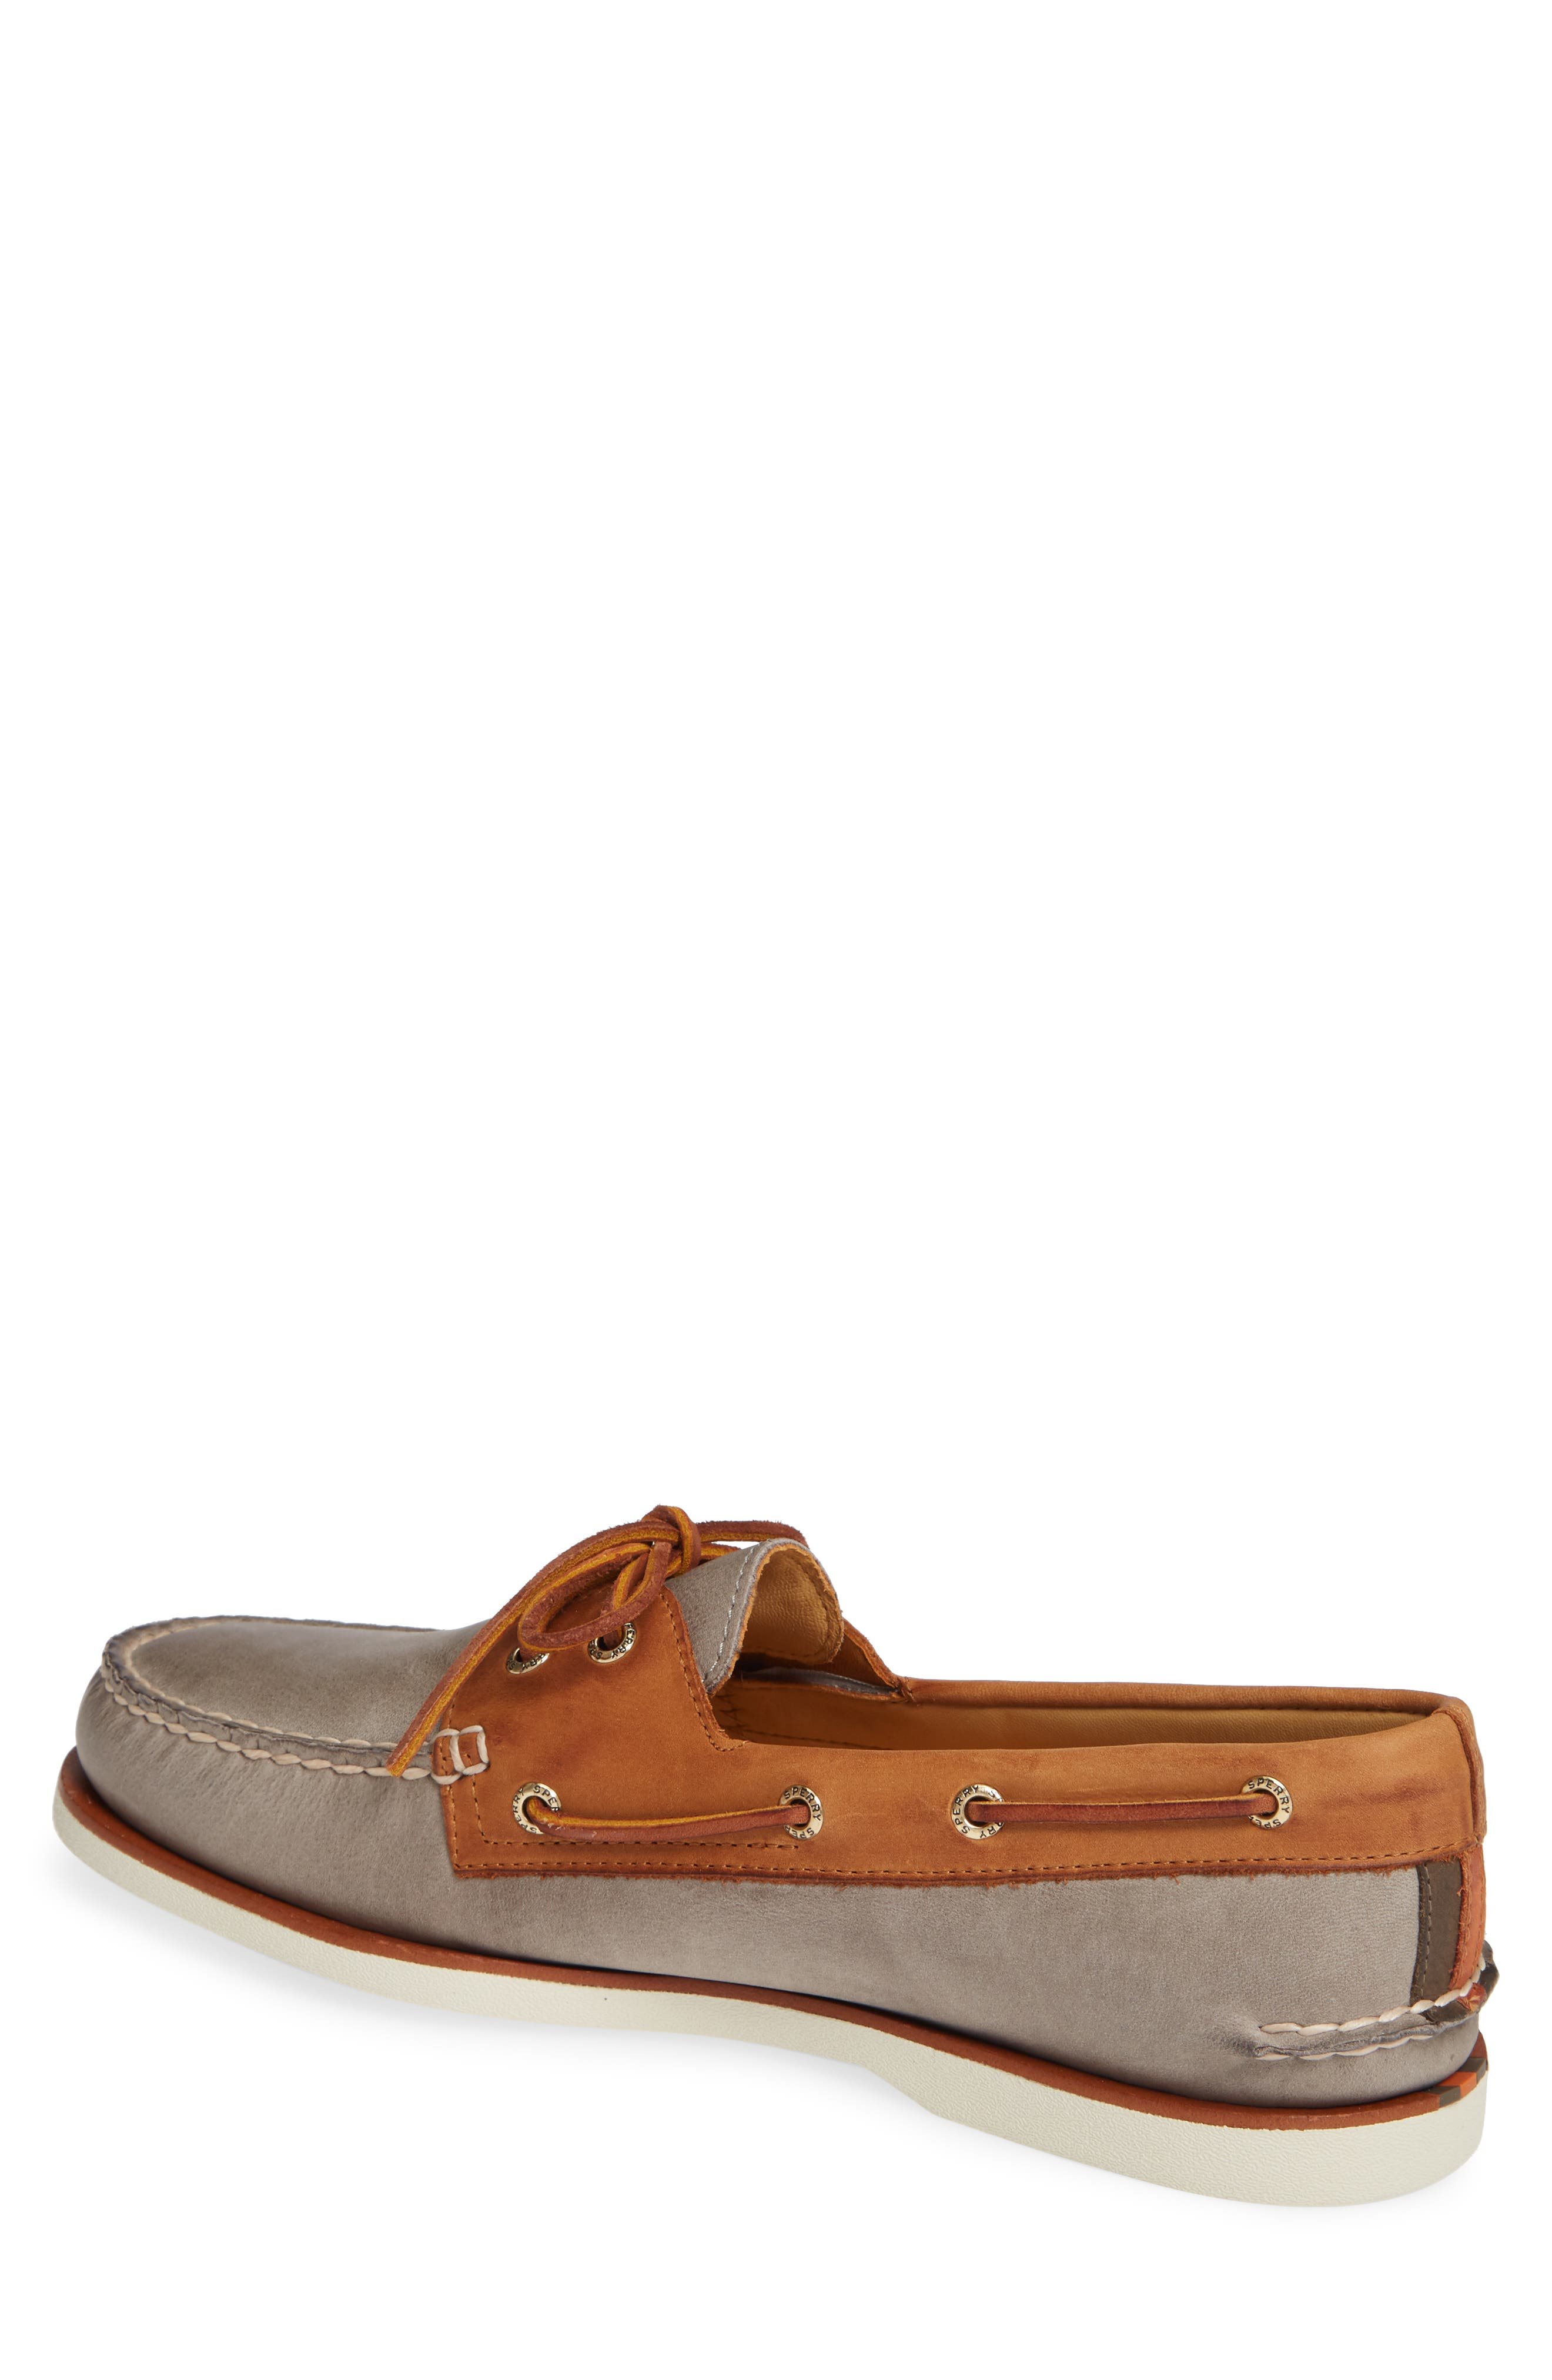 SPERRY, Gold Cup AO Boat Shoe, Alternate thumbnail 2, color, 020